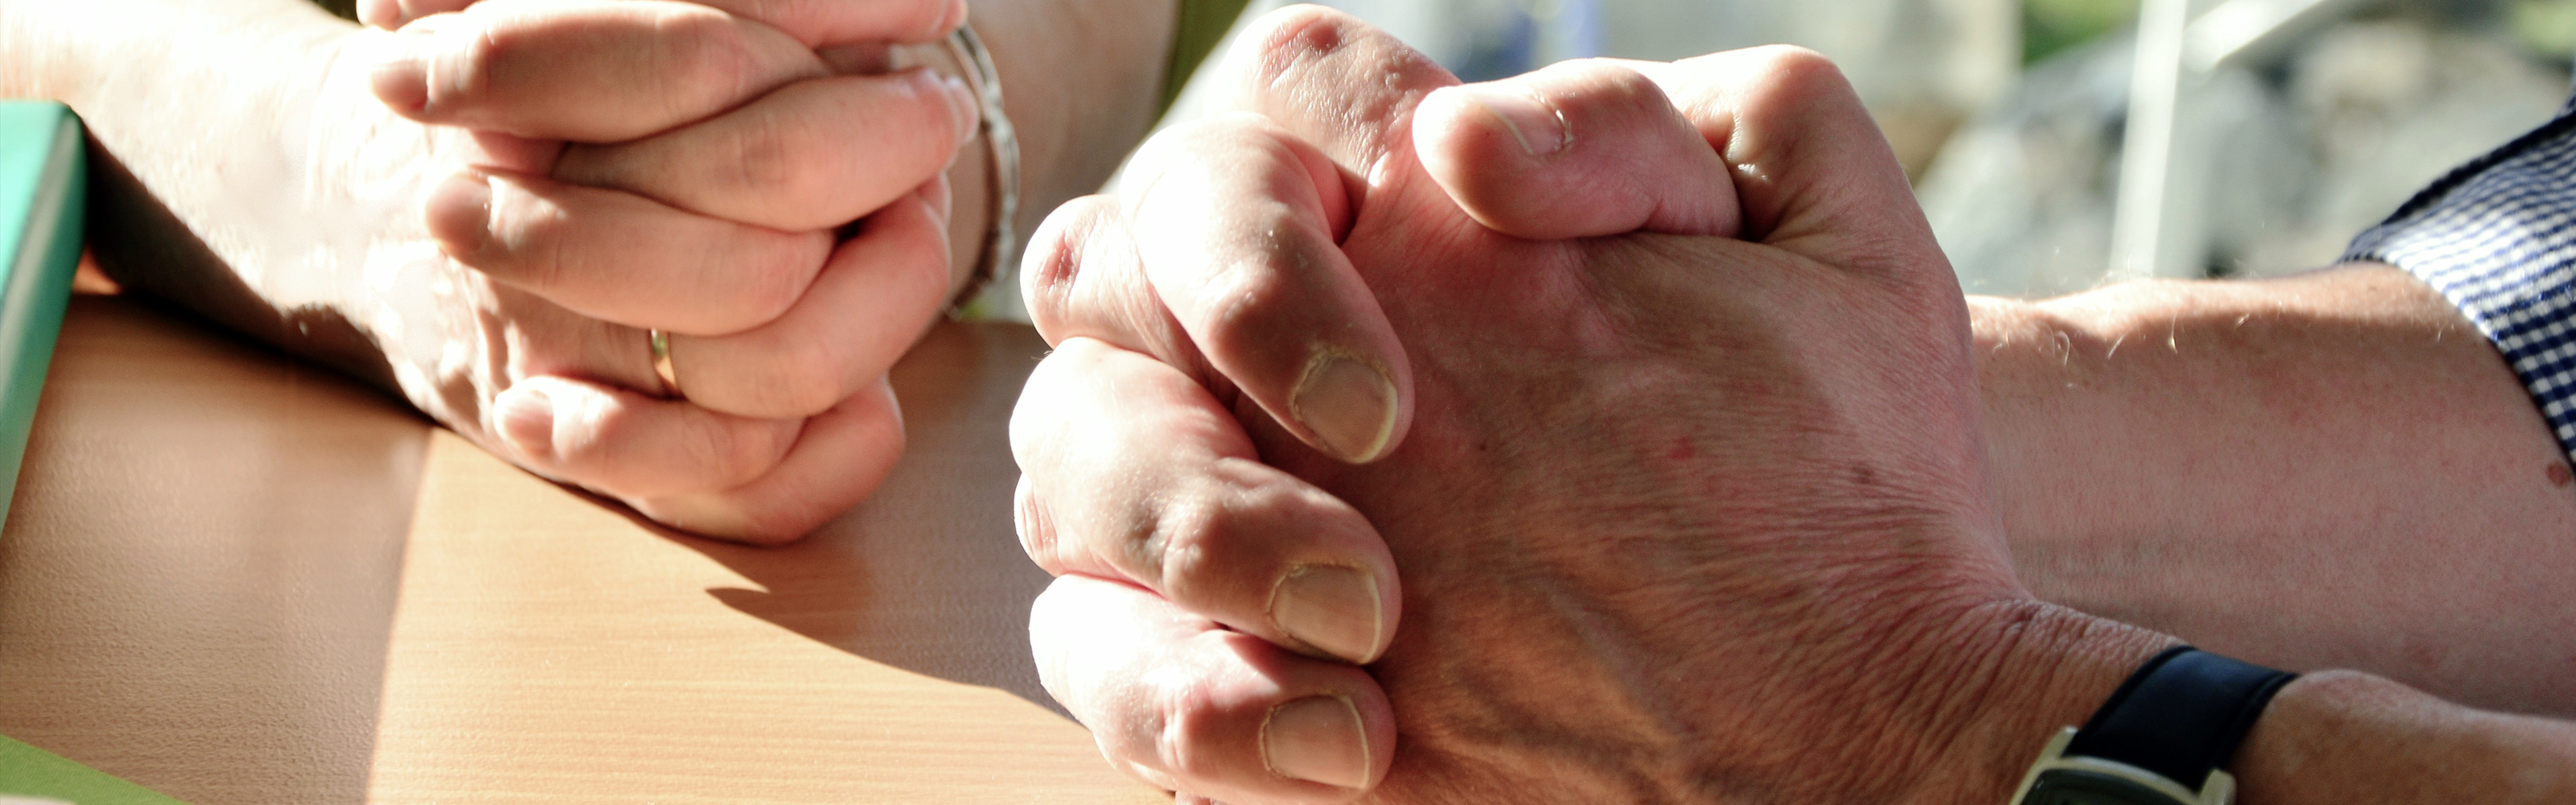 Hands of two people praying on a table